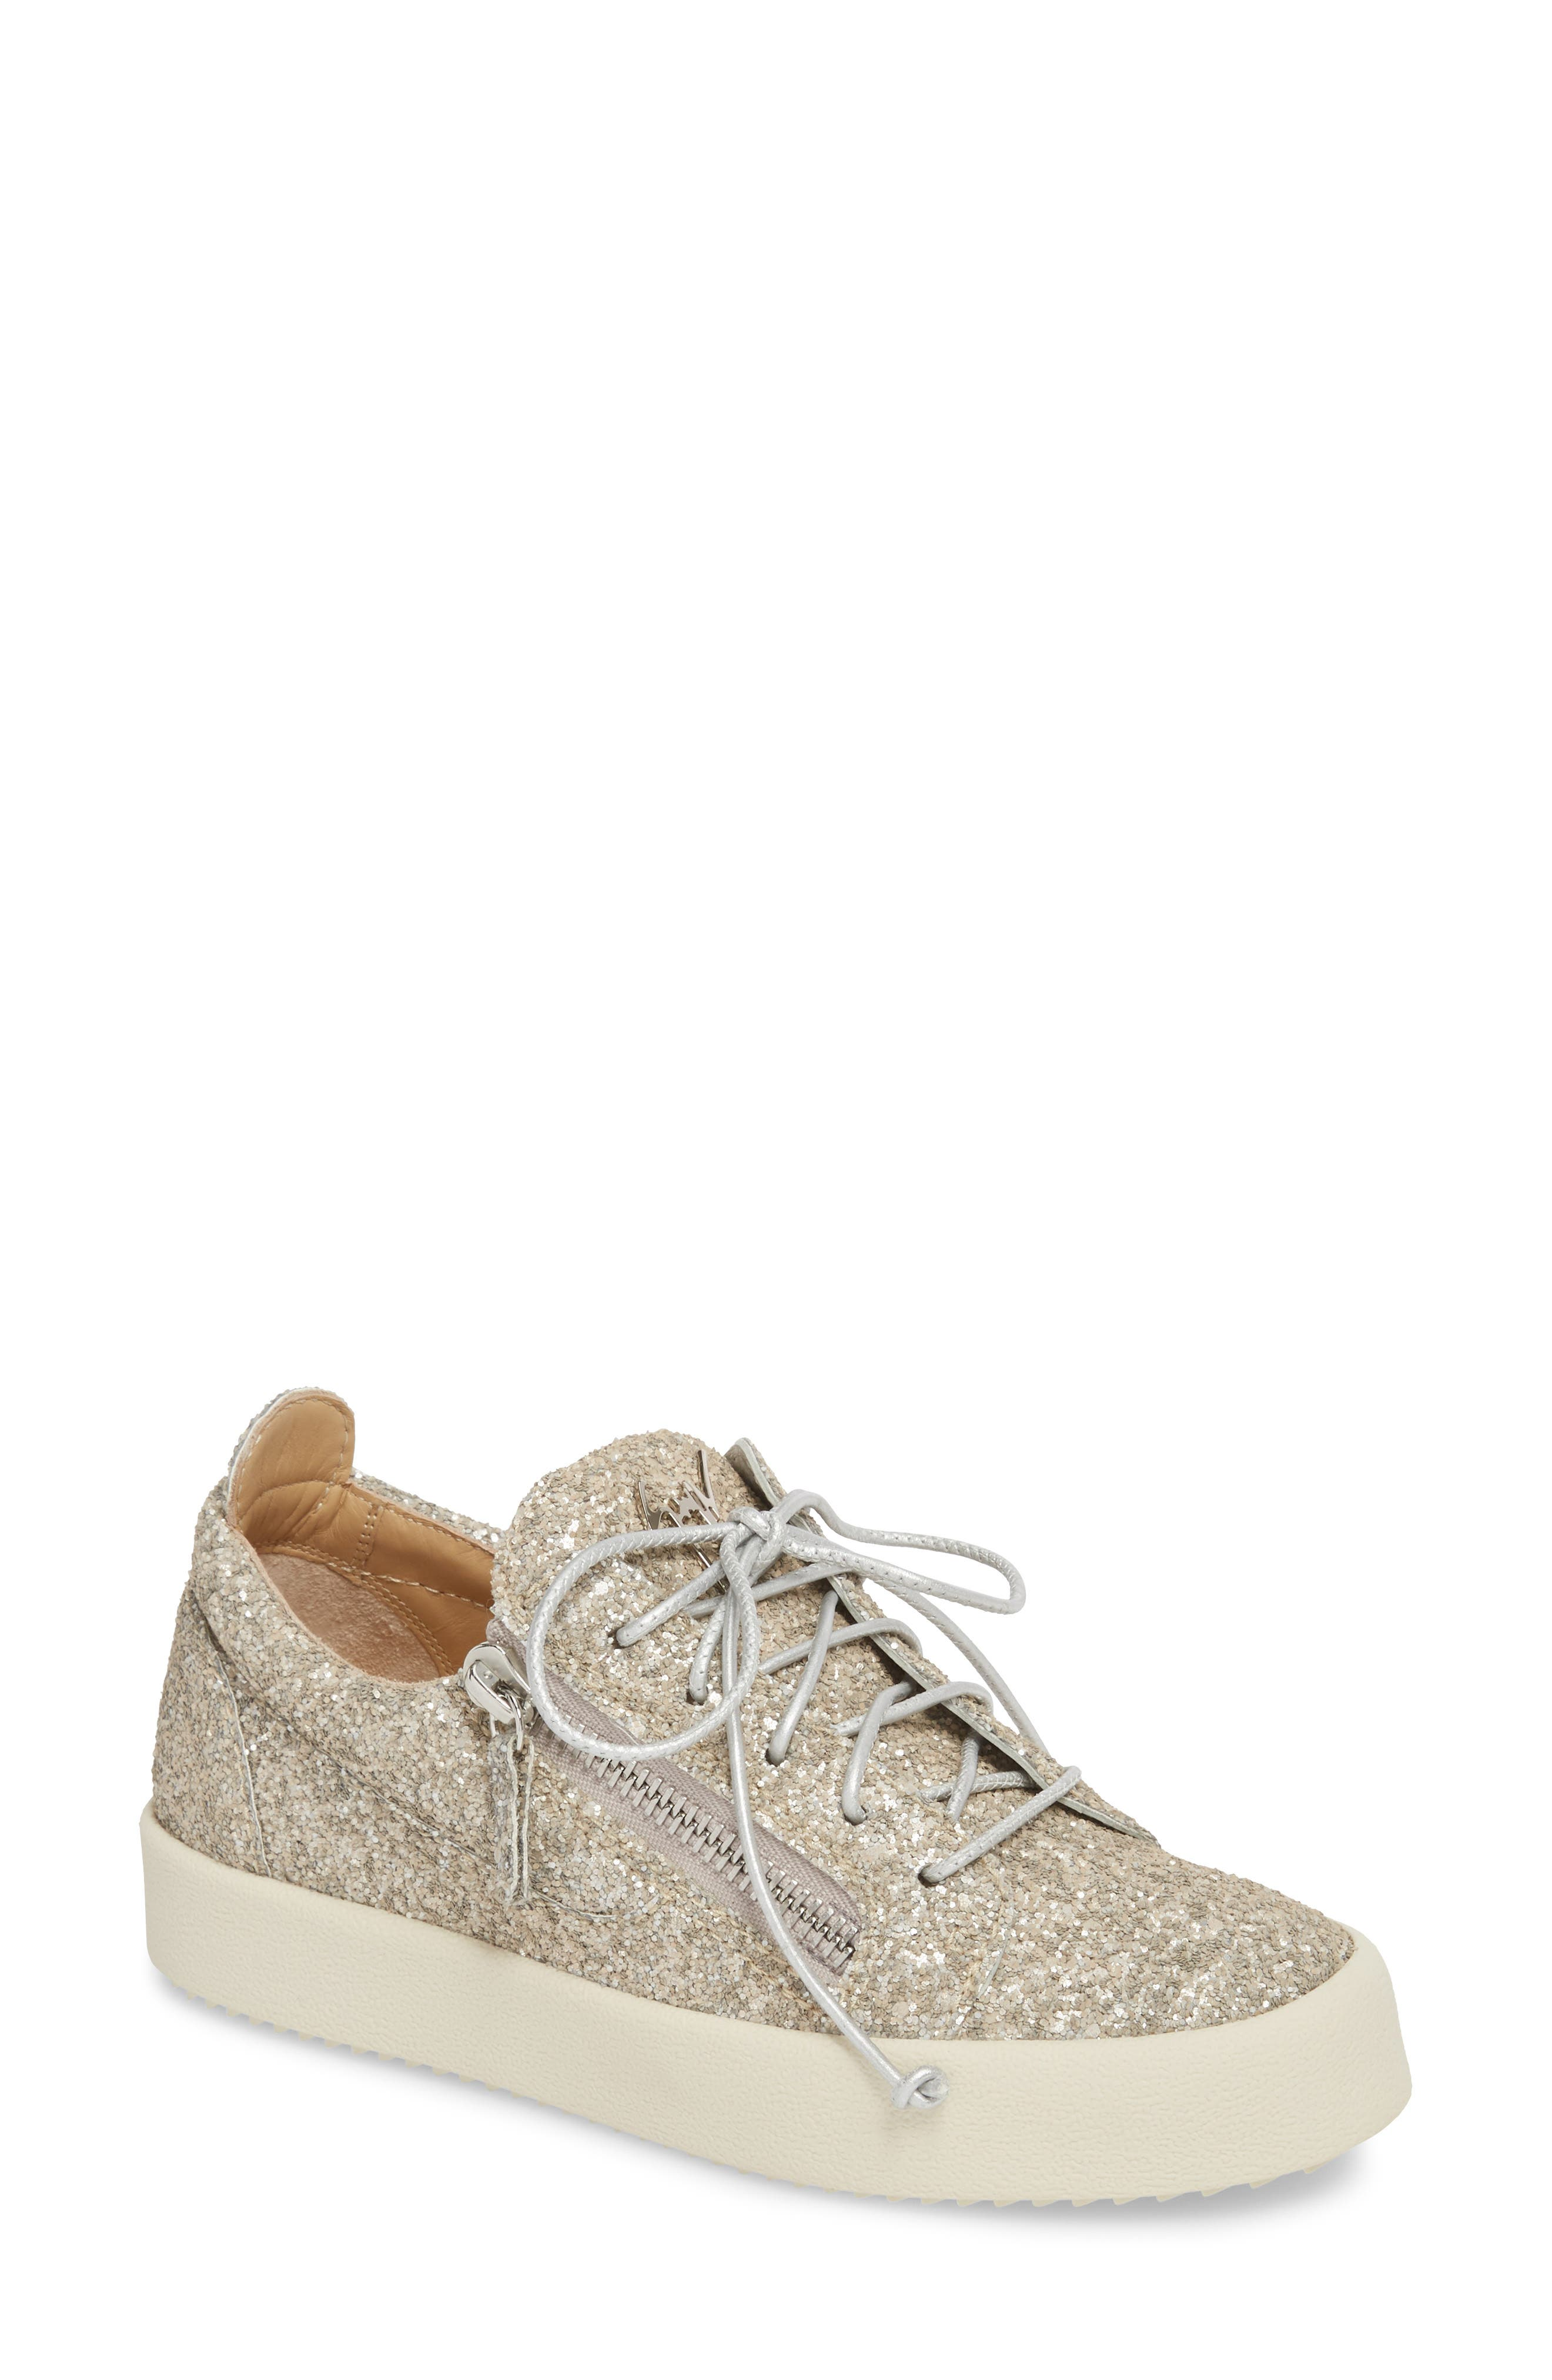 May London Low Top Sneaker,                         Main,                         color, Champagne